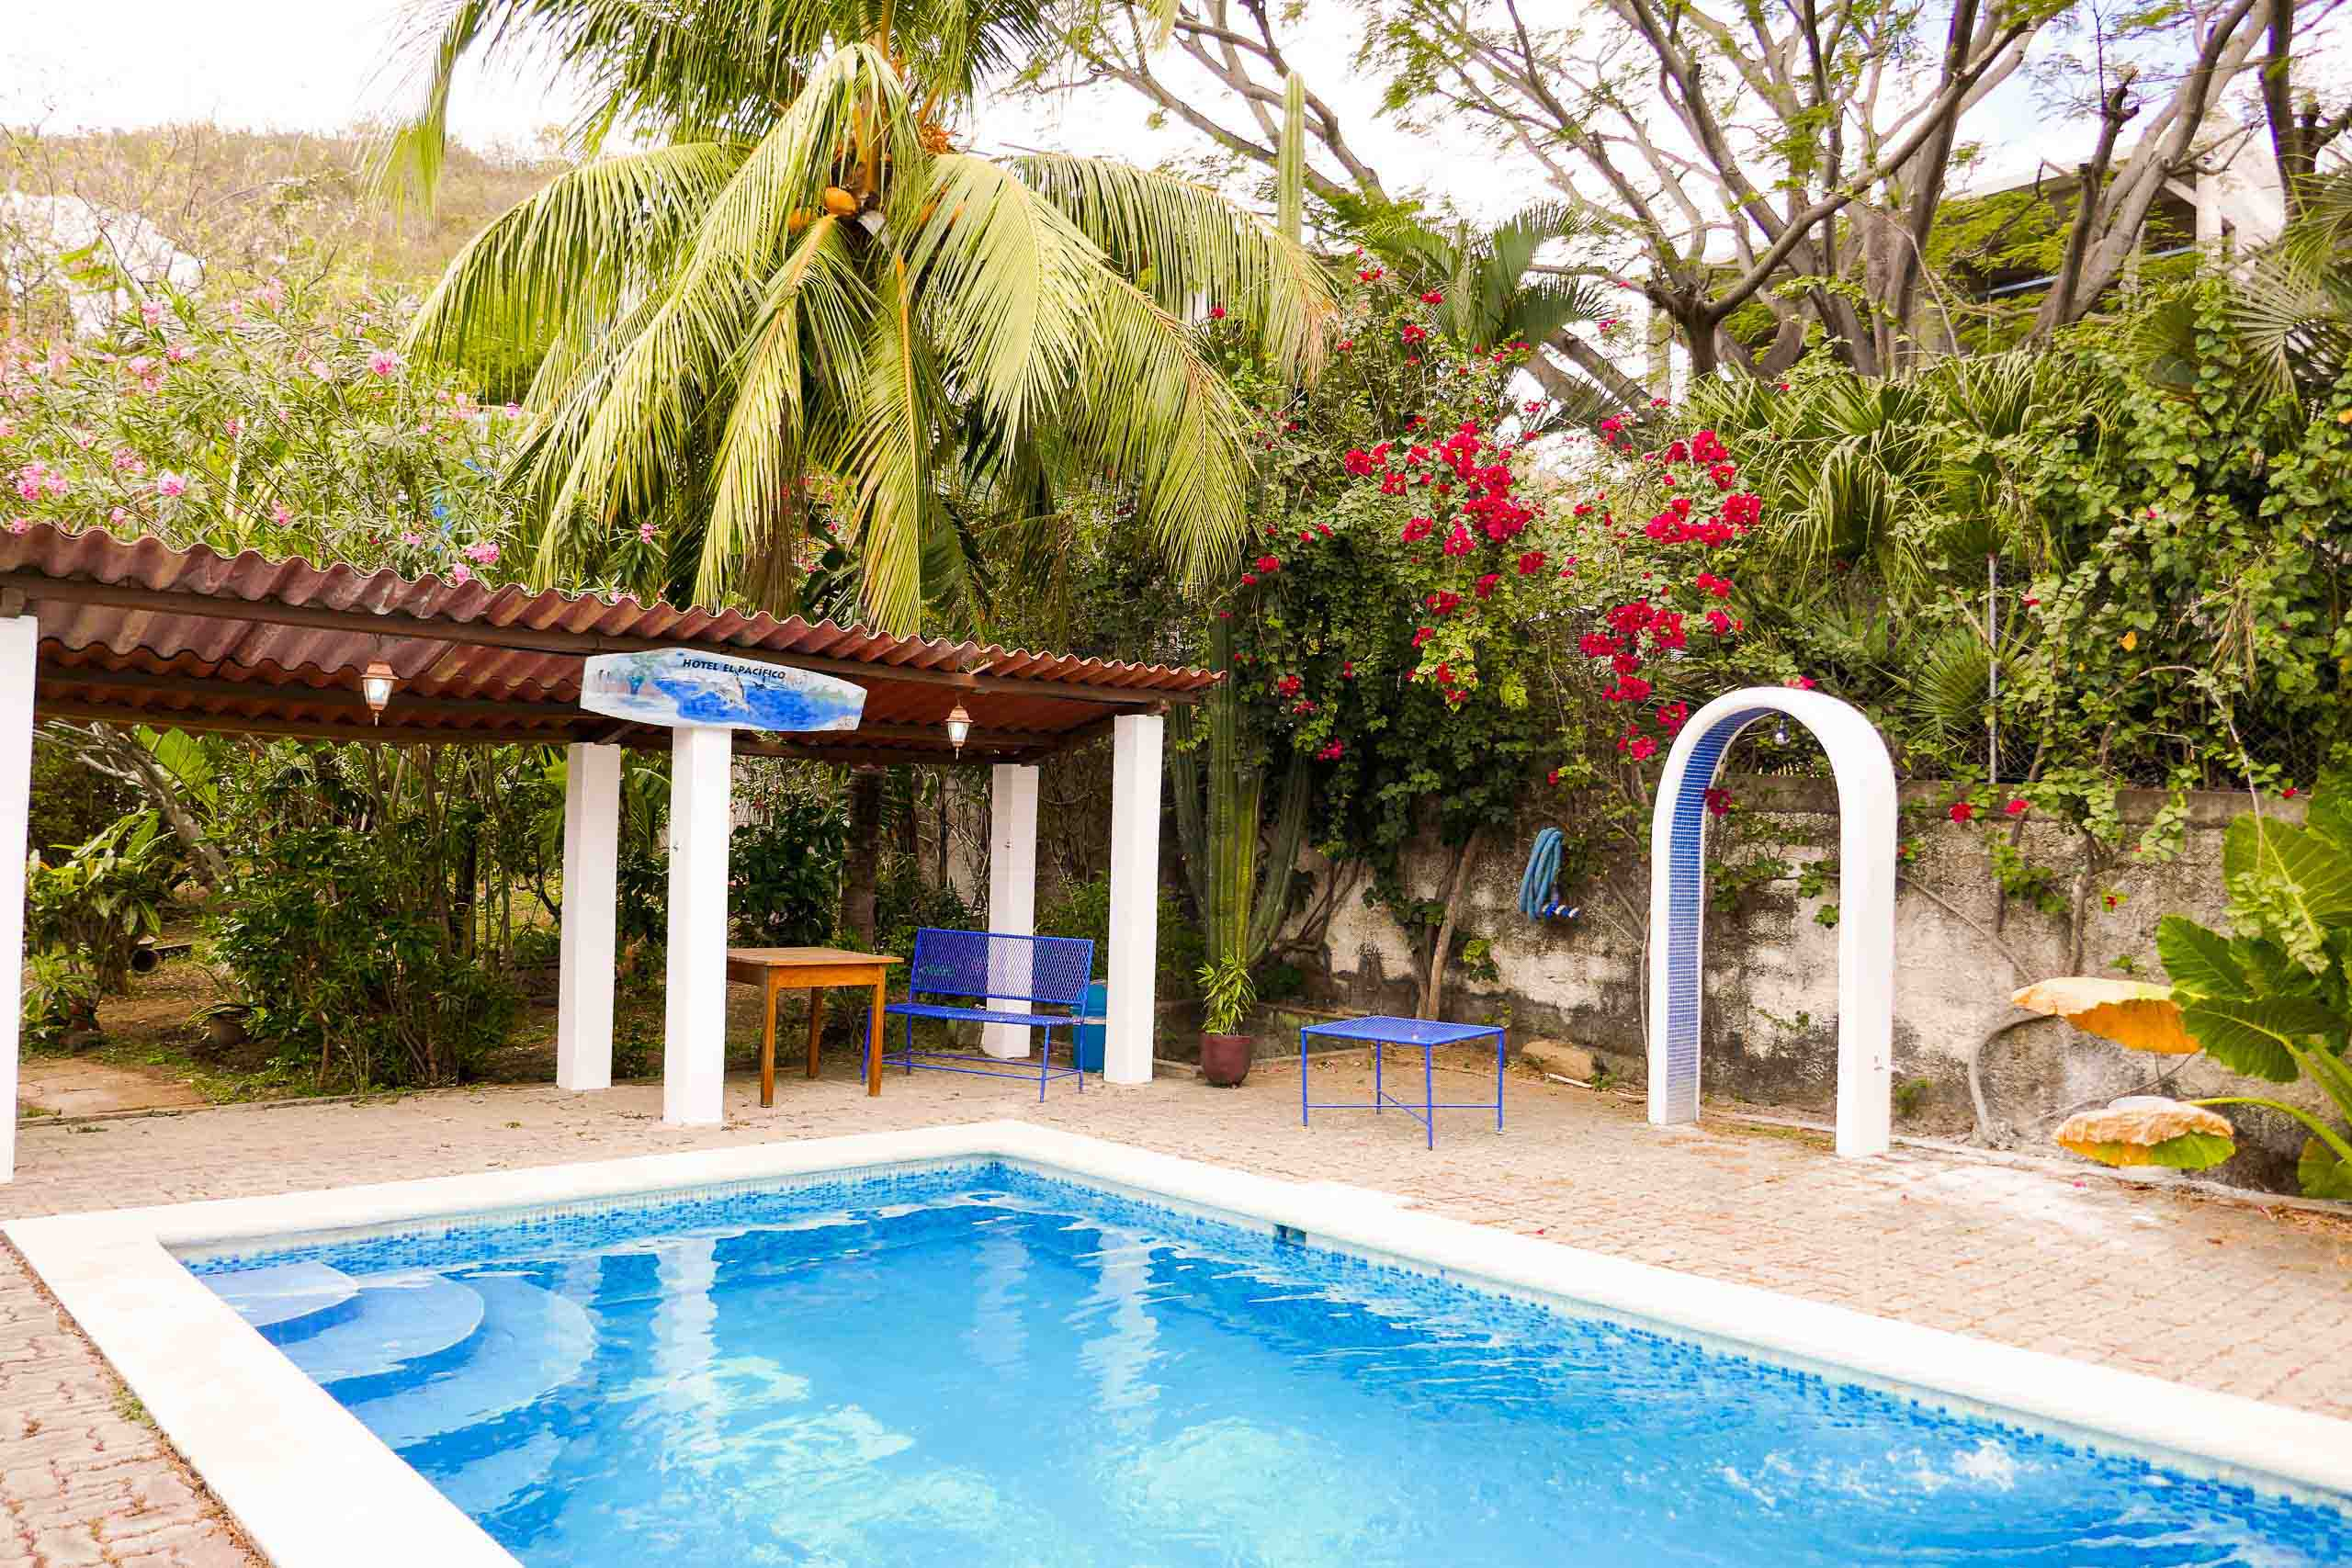 Casa Oro Group El-Pacifico-Hotel-San-Juan-del-Sur-Nicaragua-Talanguera-Pool-Gardens-Retreat-Seclusion-Privacy Hotel Pacifico